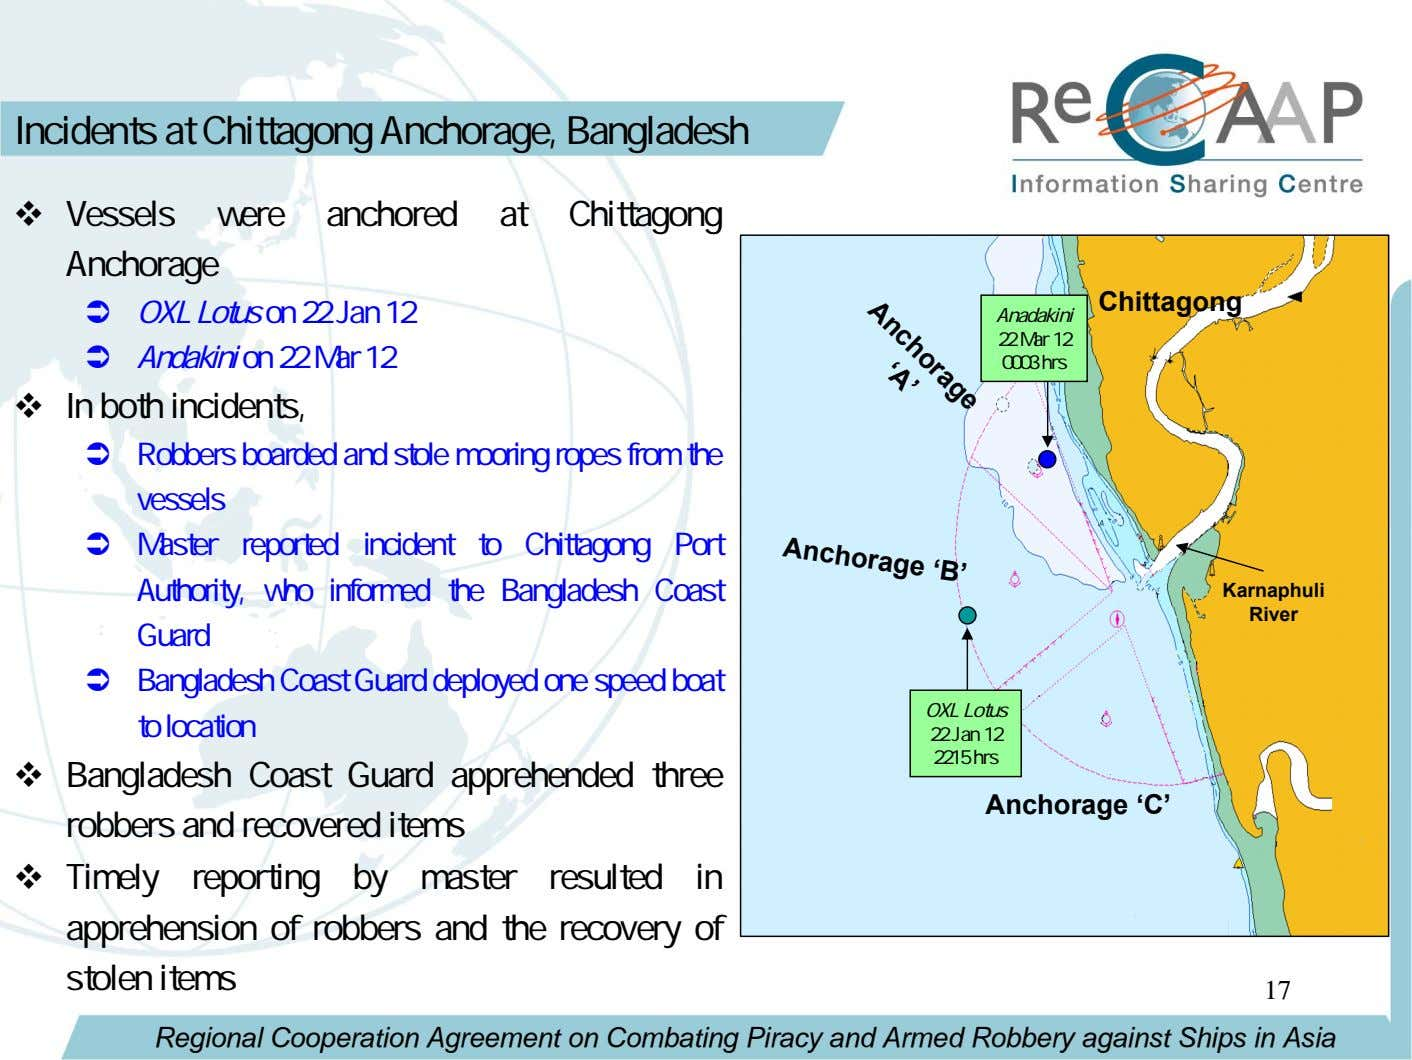 Anchorage 'A' Incidents at Chittagong Anchorage, Bangladesh Vessels were anchored at Chittagong Anchorage